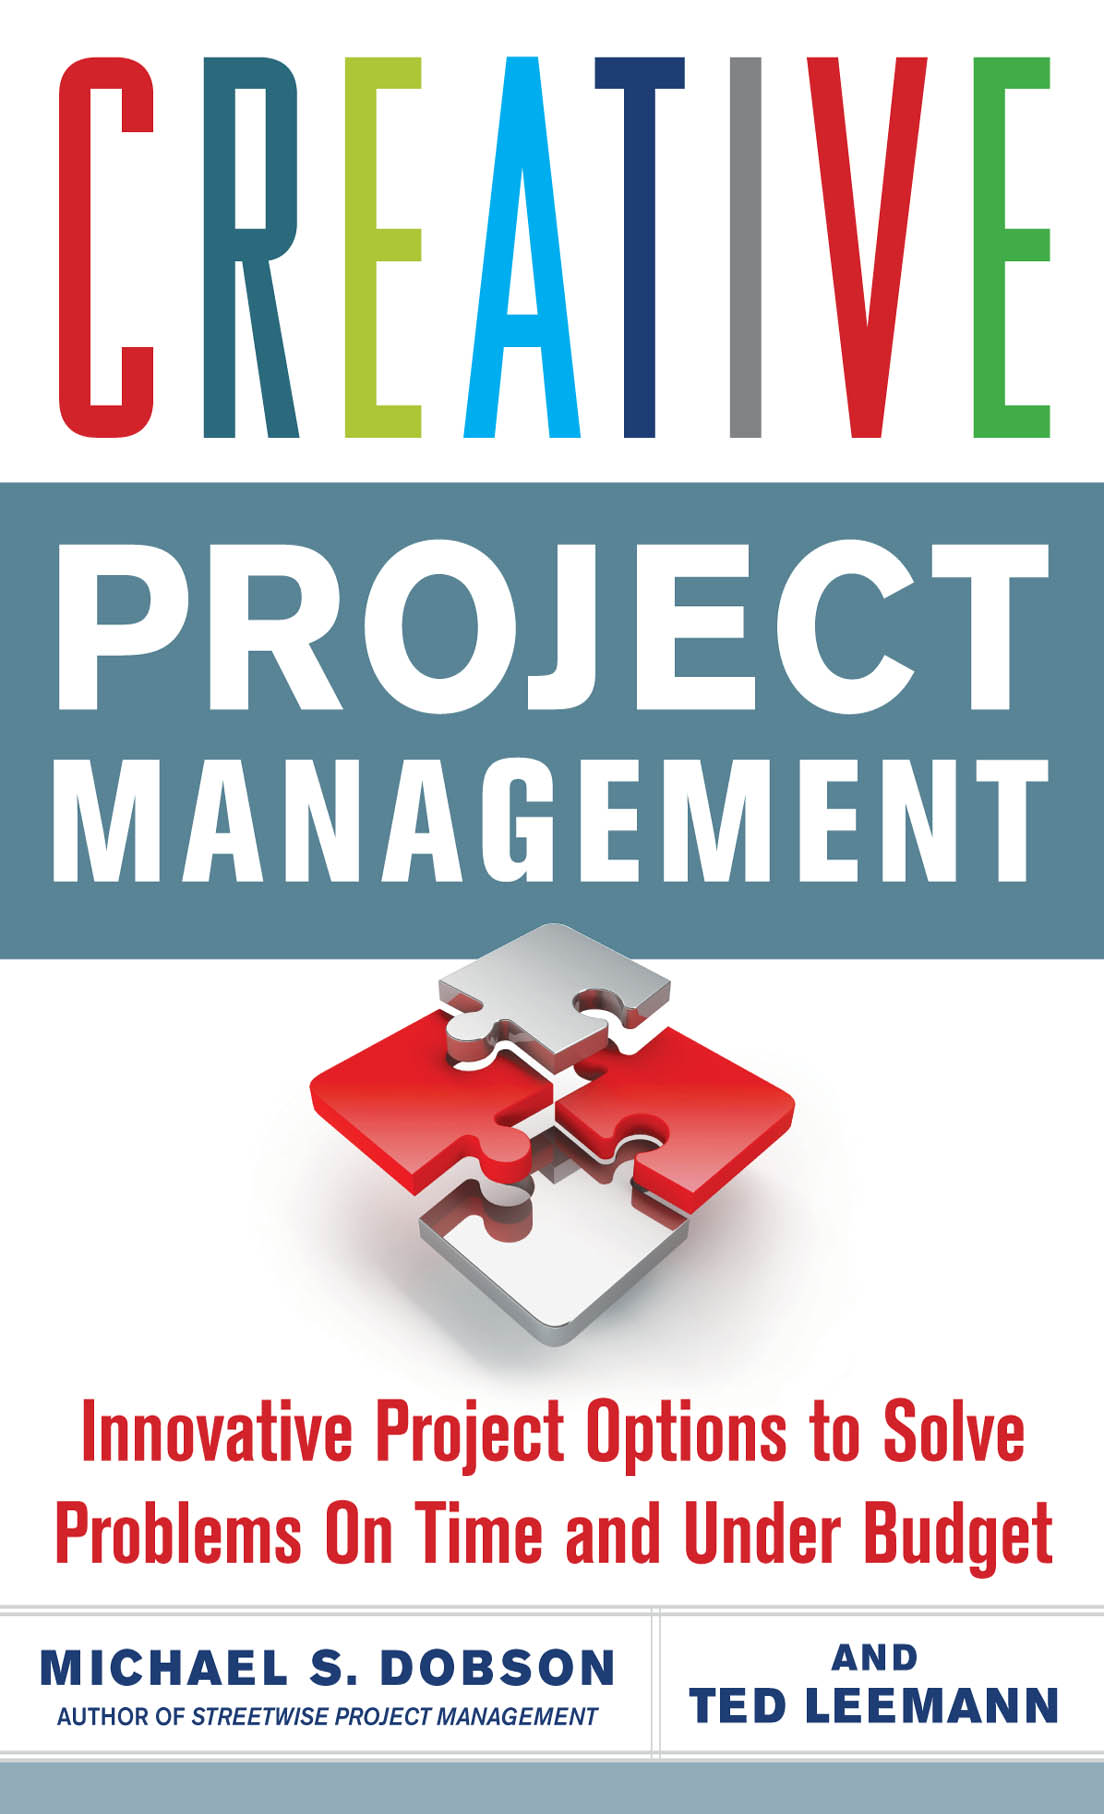 Download Ebook Creative Project Management by Michael S Dobson Pdf